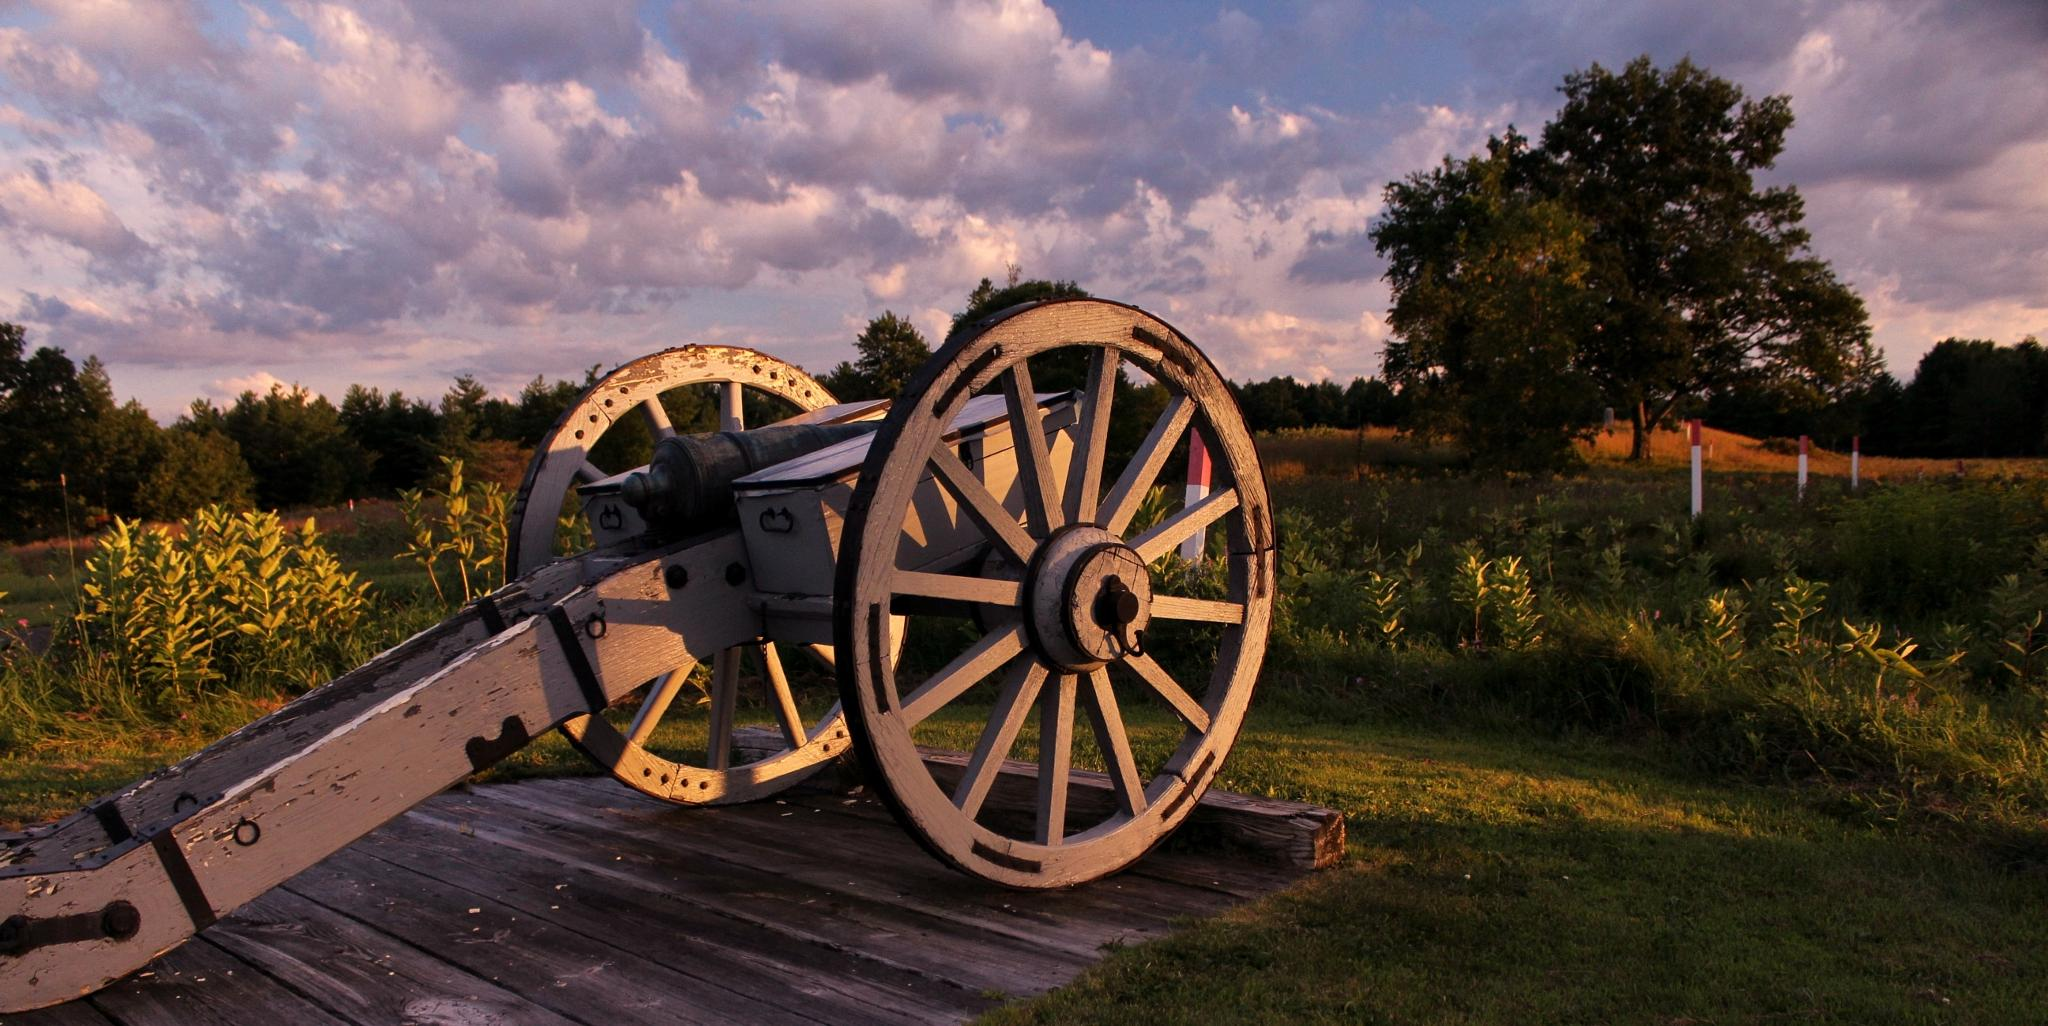 Replica of a Revolutionary War Cannon by debbie.lamontesnyder